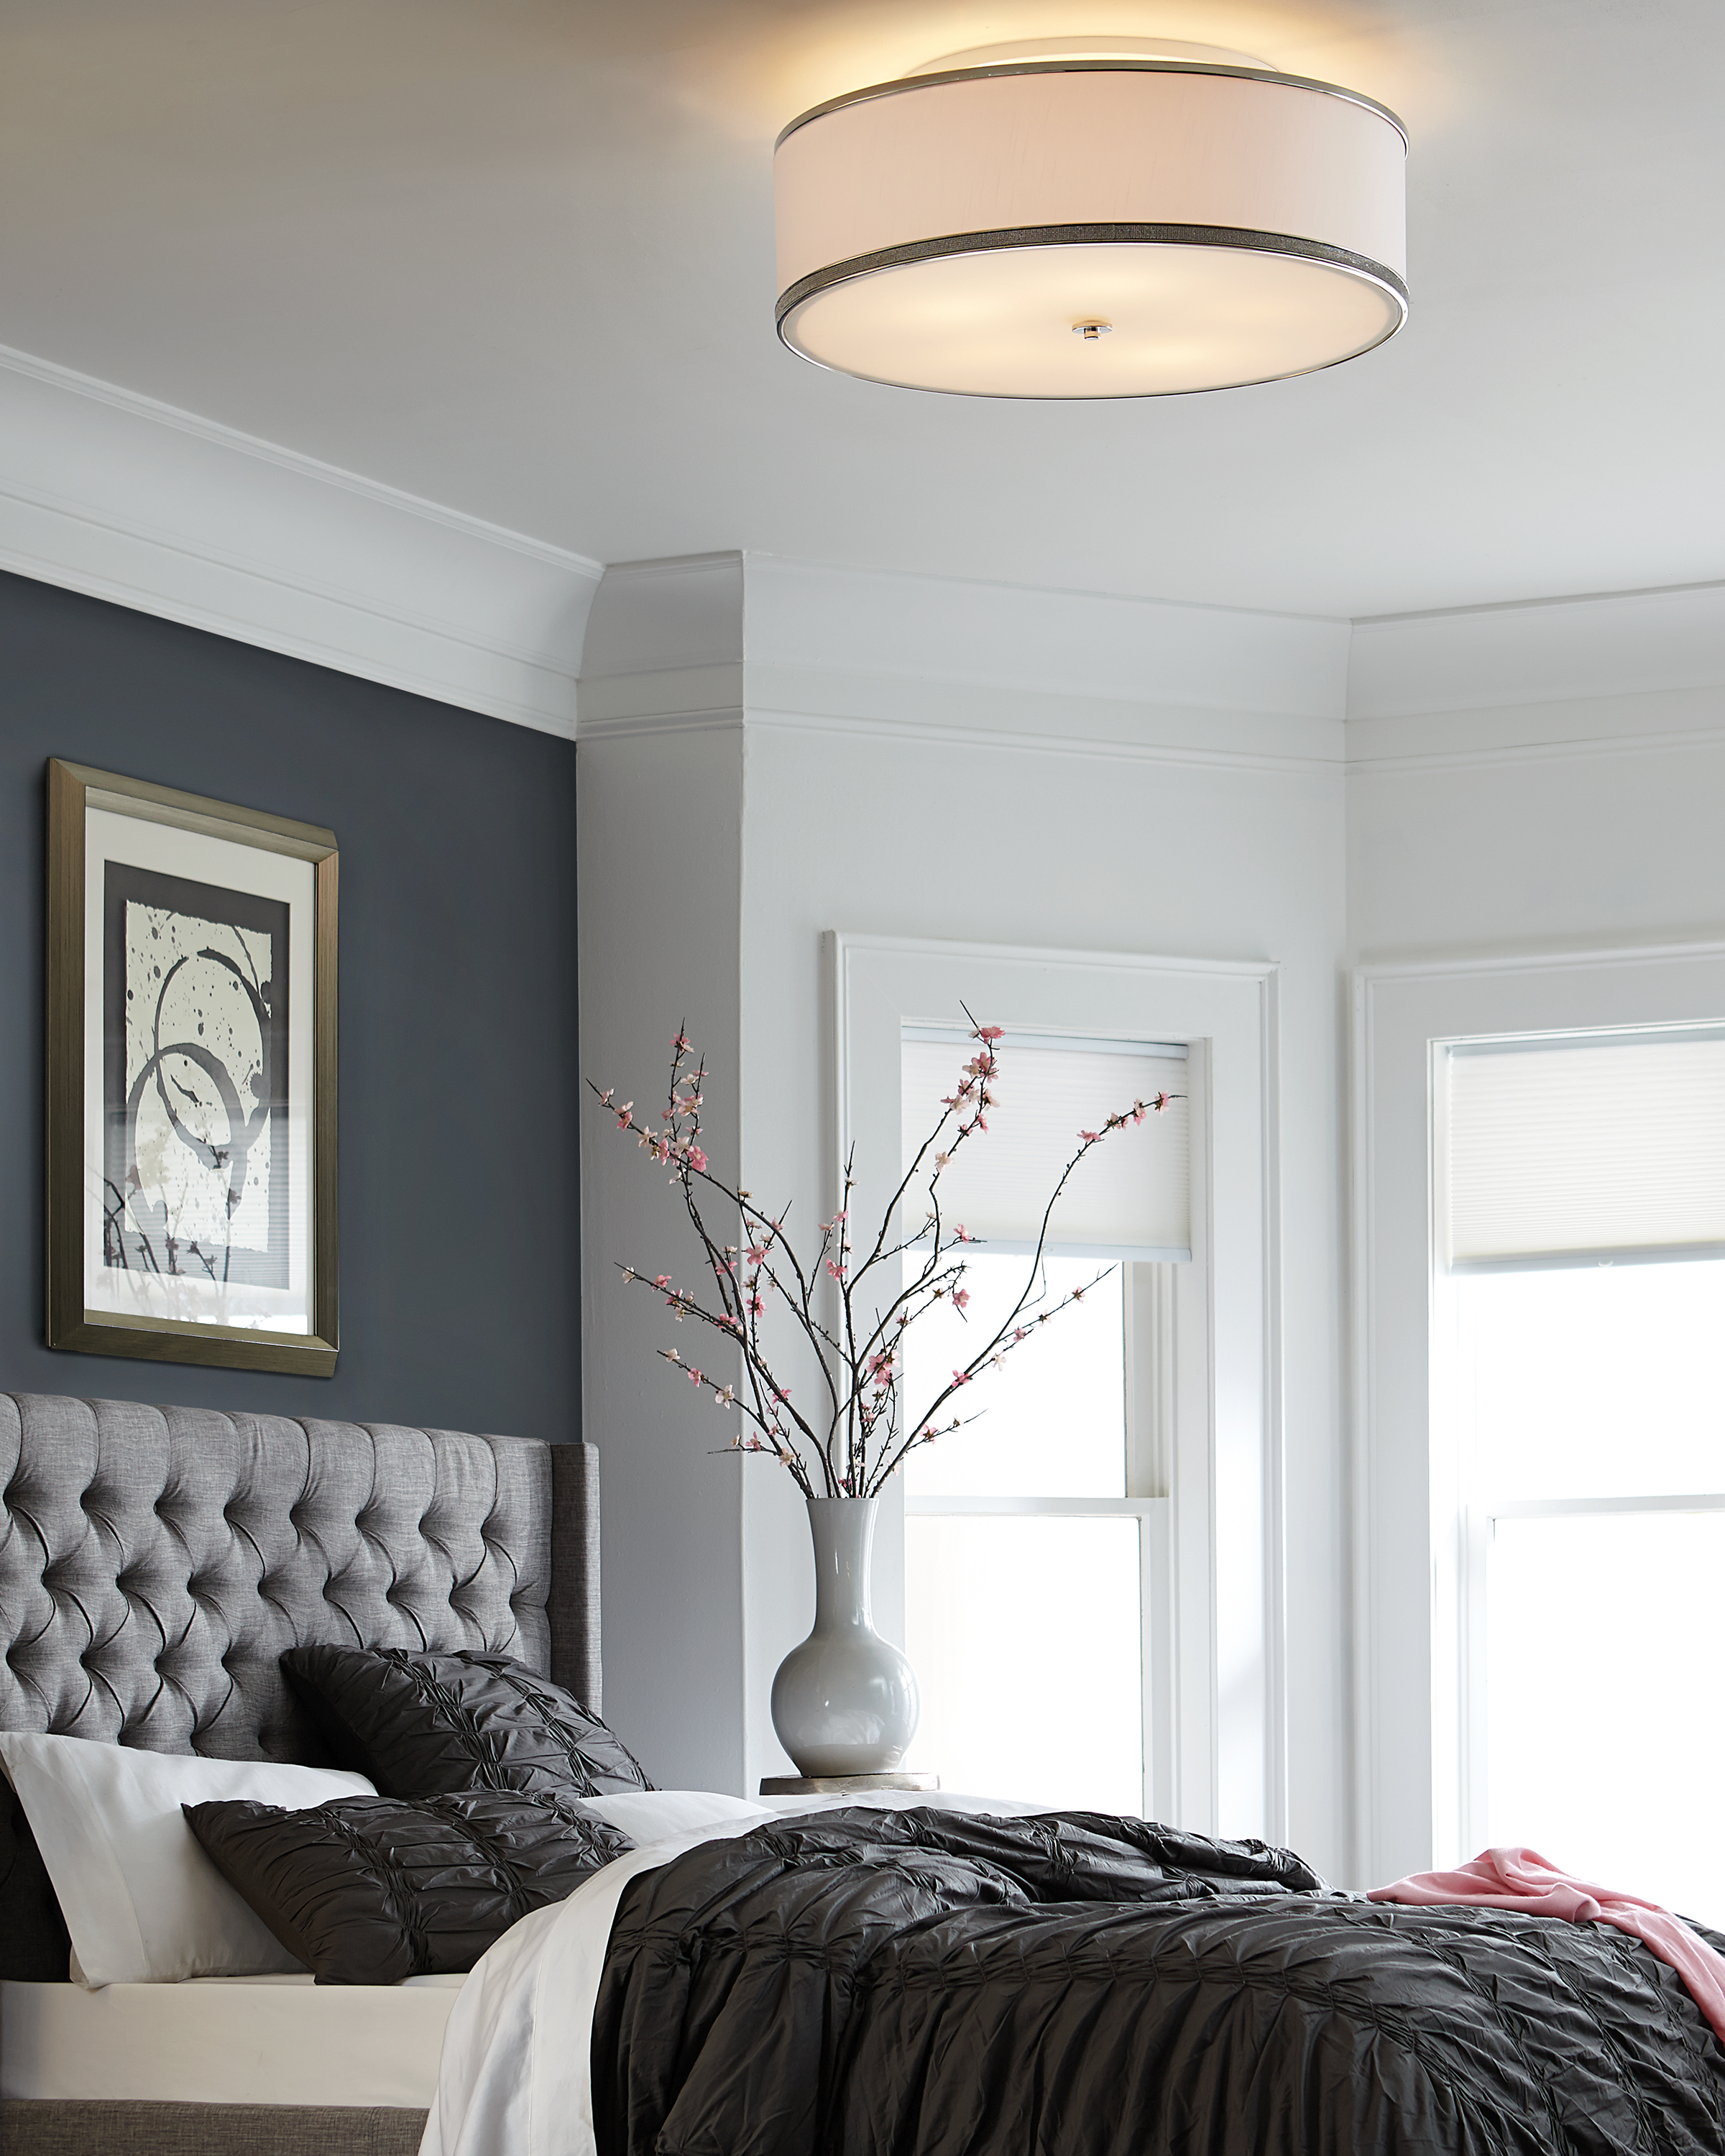 feiss pave 30 1 4 quot w polished nickel ceiling light 1t629 15272 | pave semiflush bedroom